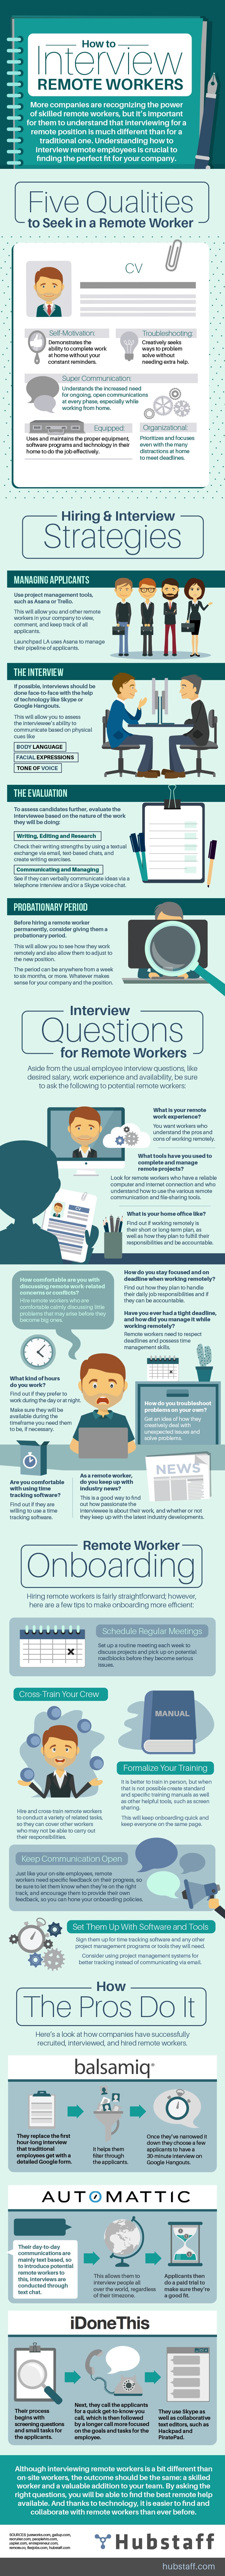 how-to-interview-remote-workers1-15c2afef17e15f02b289c8fe29400968